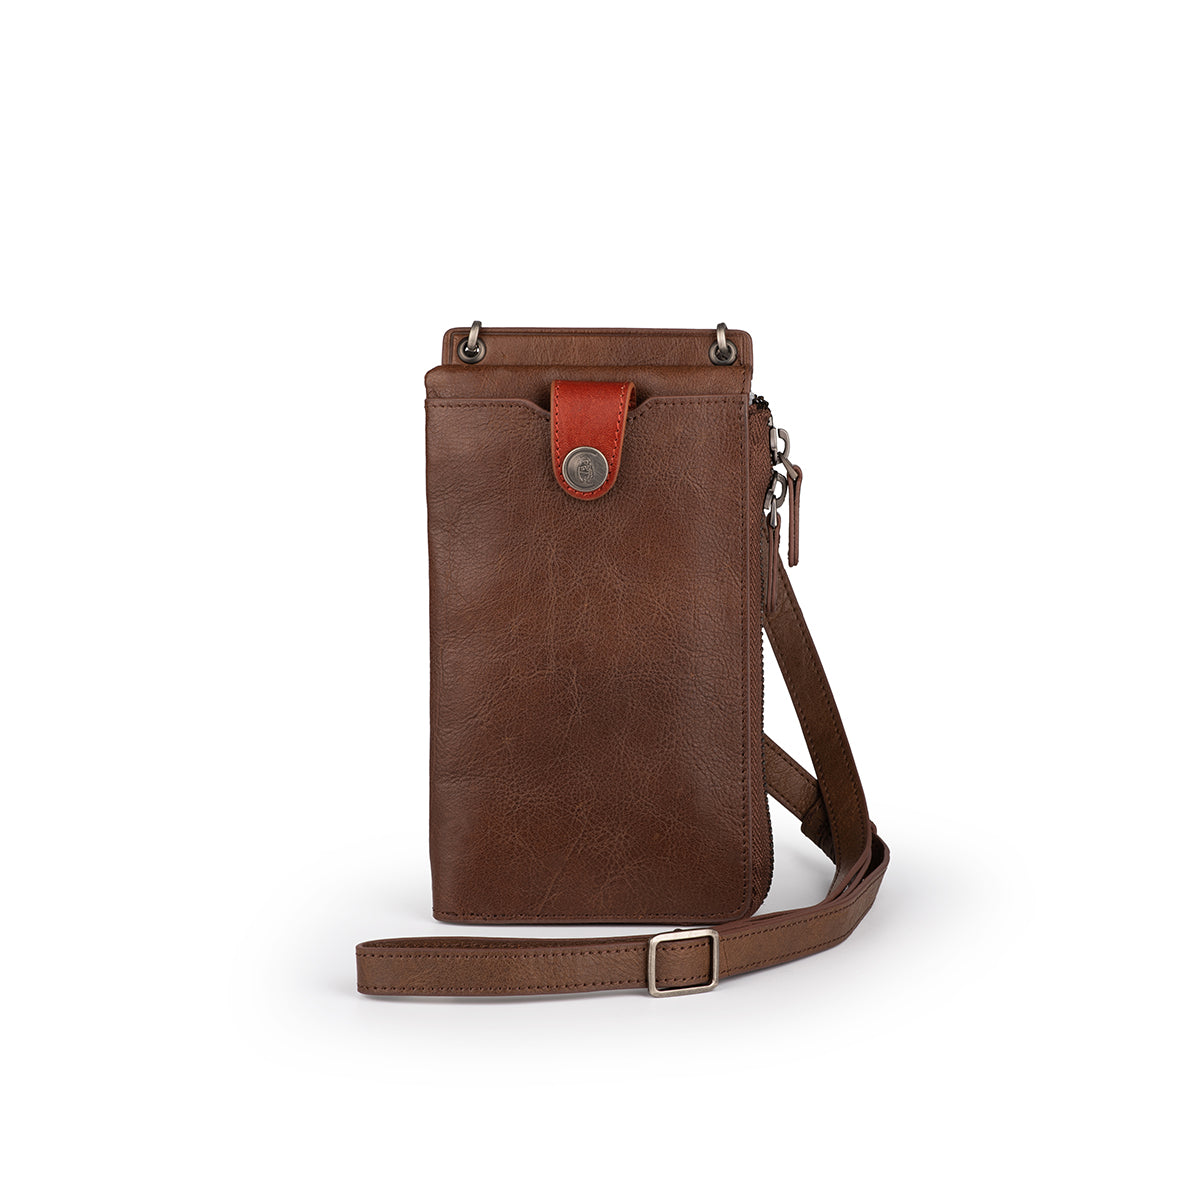 Long Leather Pouch with Strap